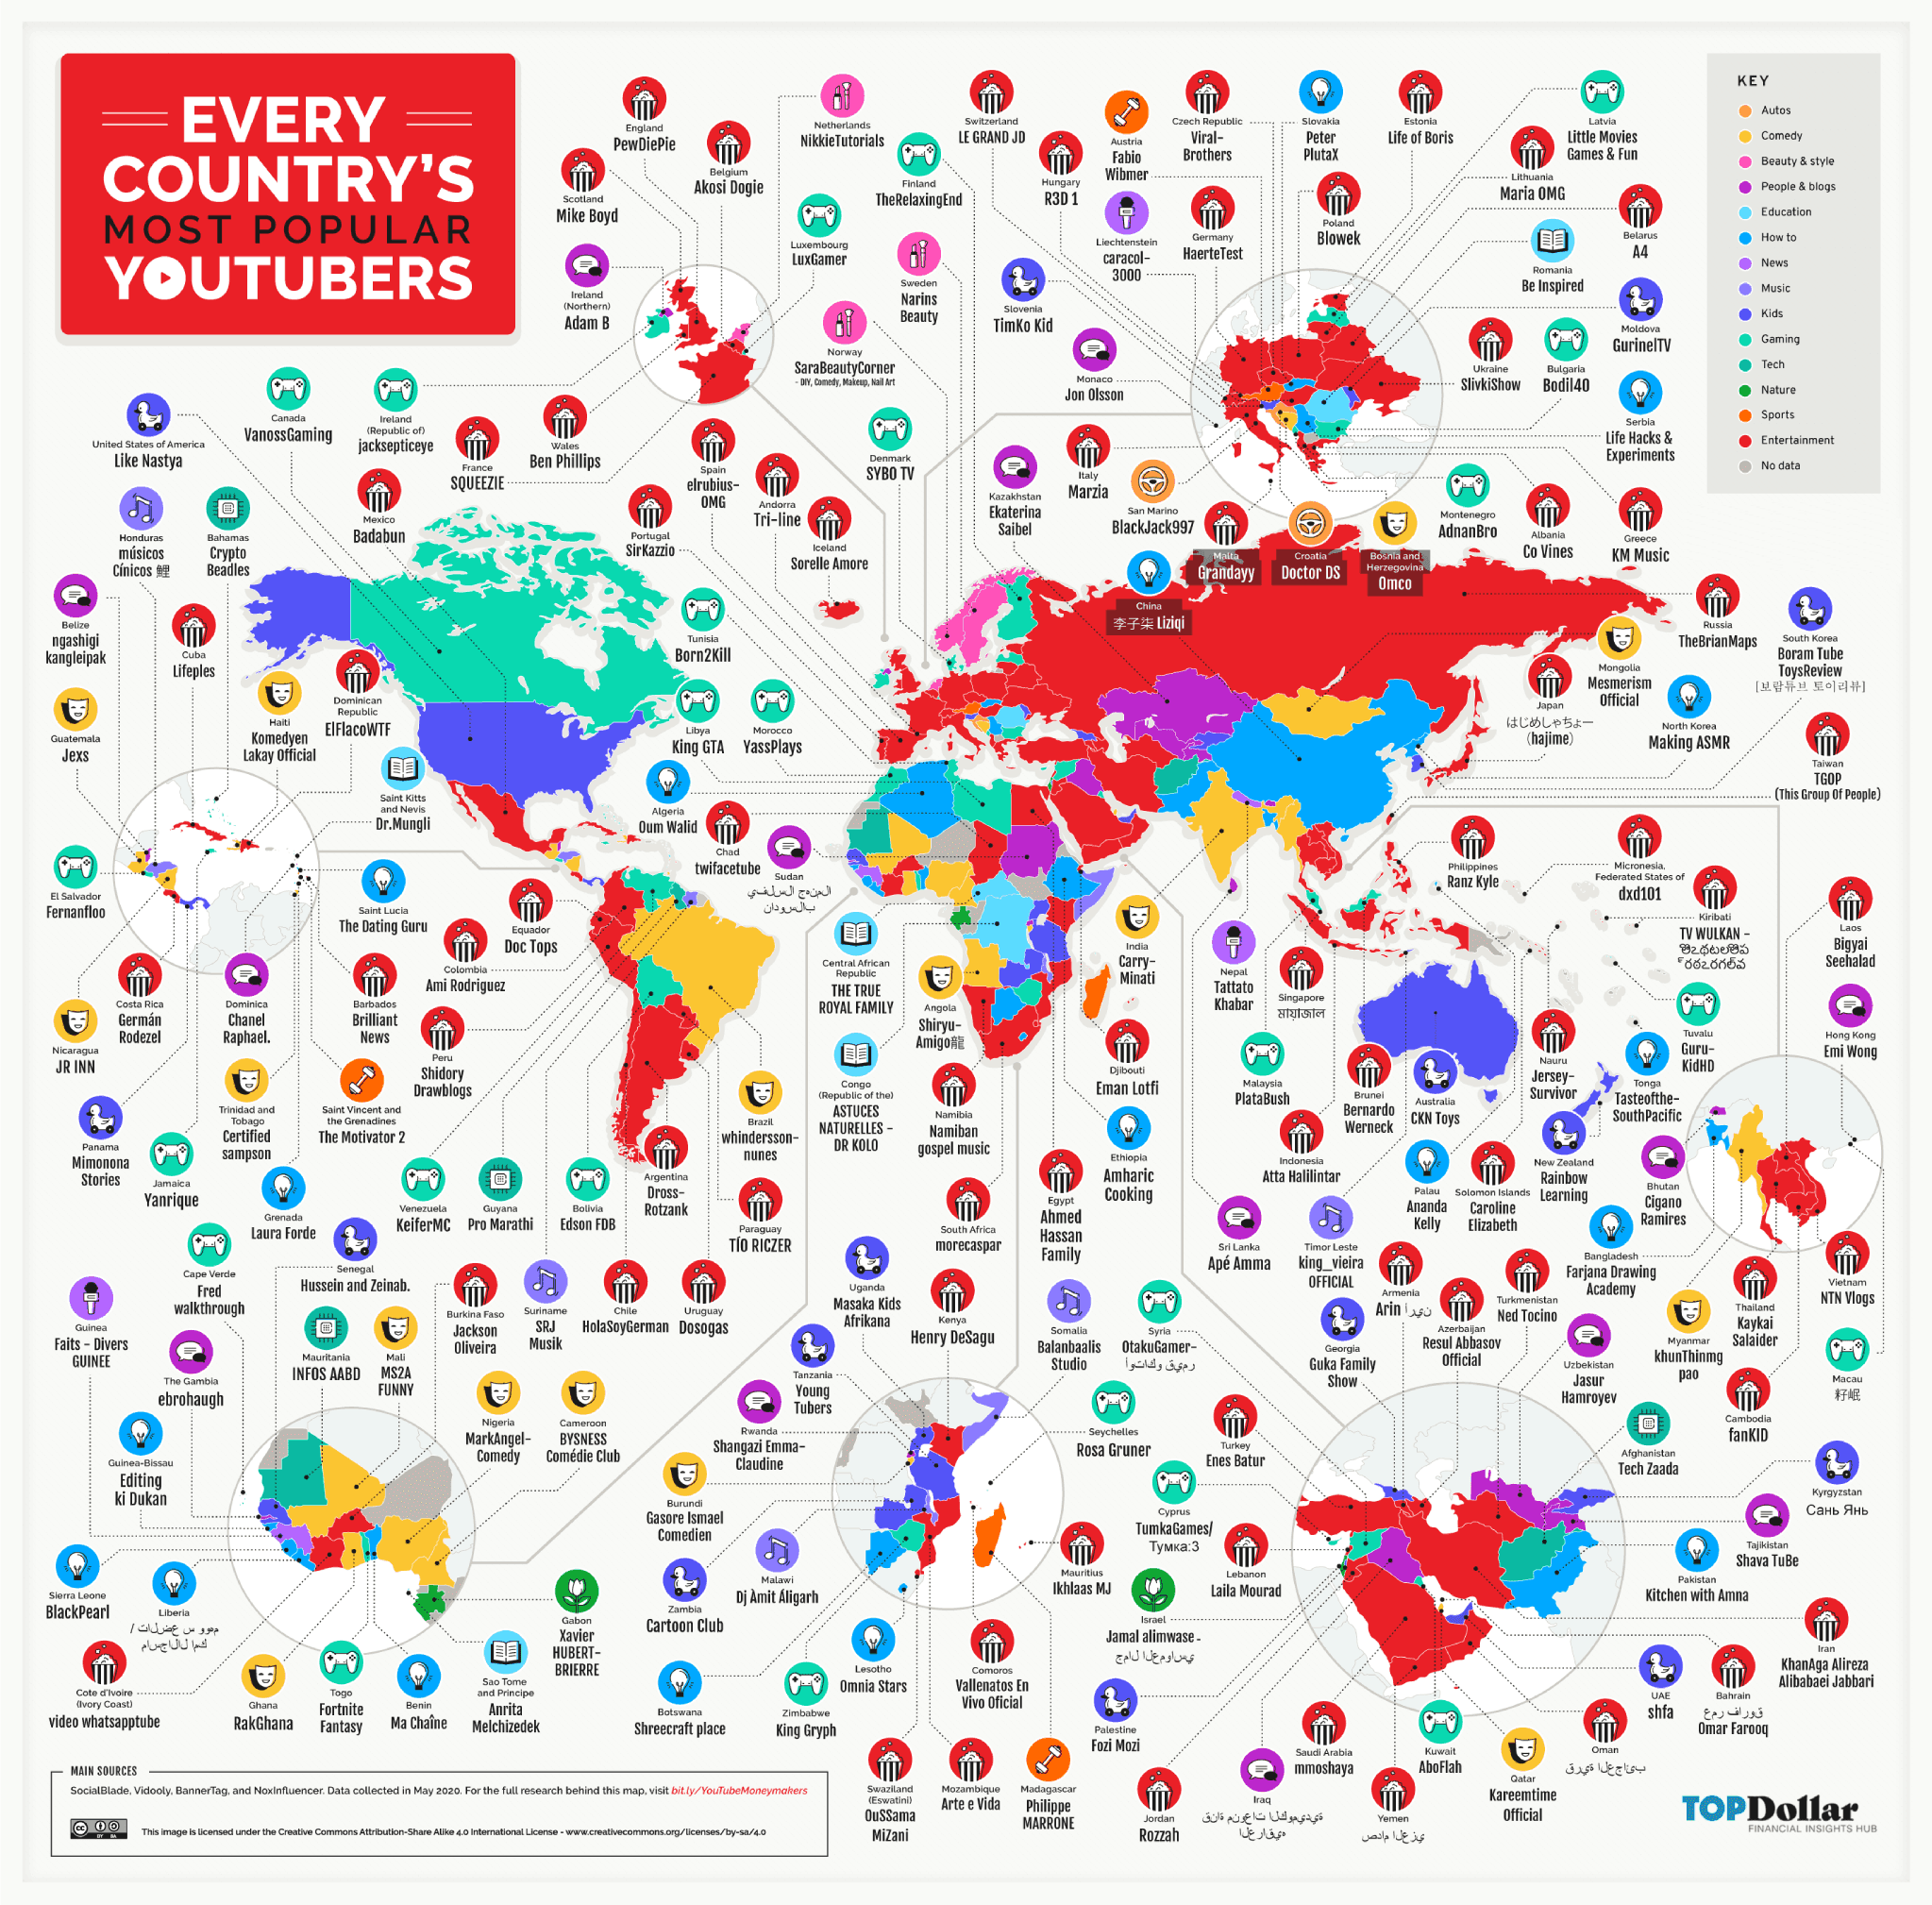 New map shows every country's most popular YouTube channel (and estimated earnings)